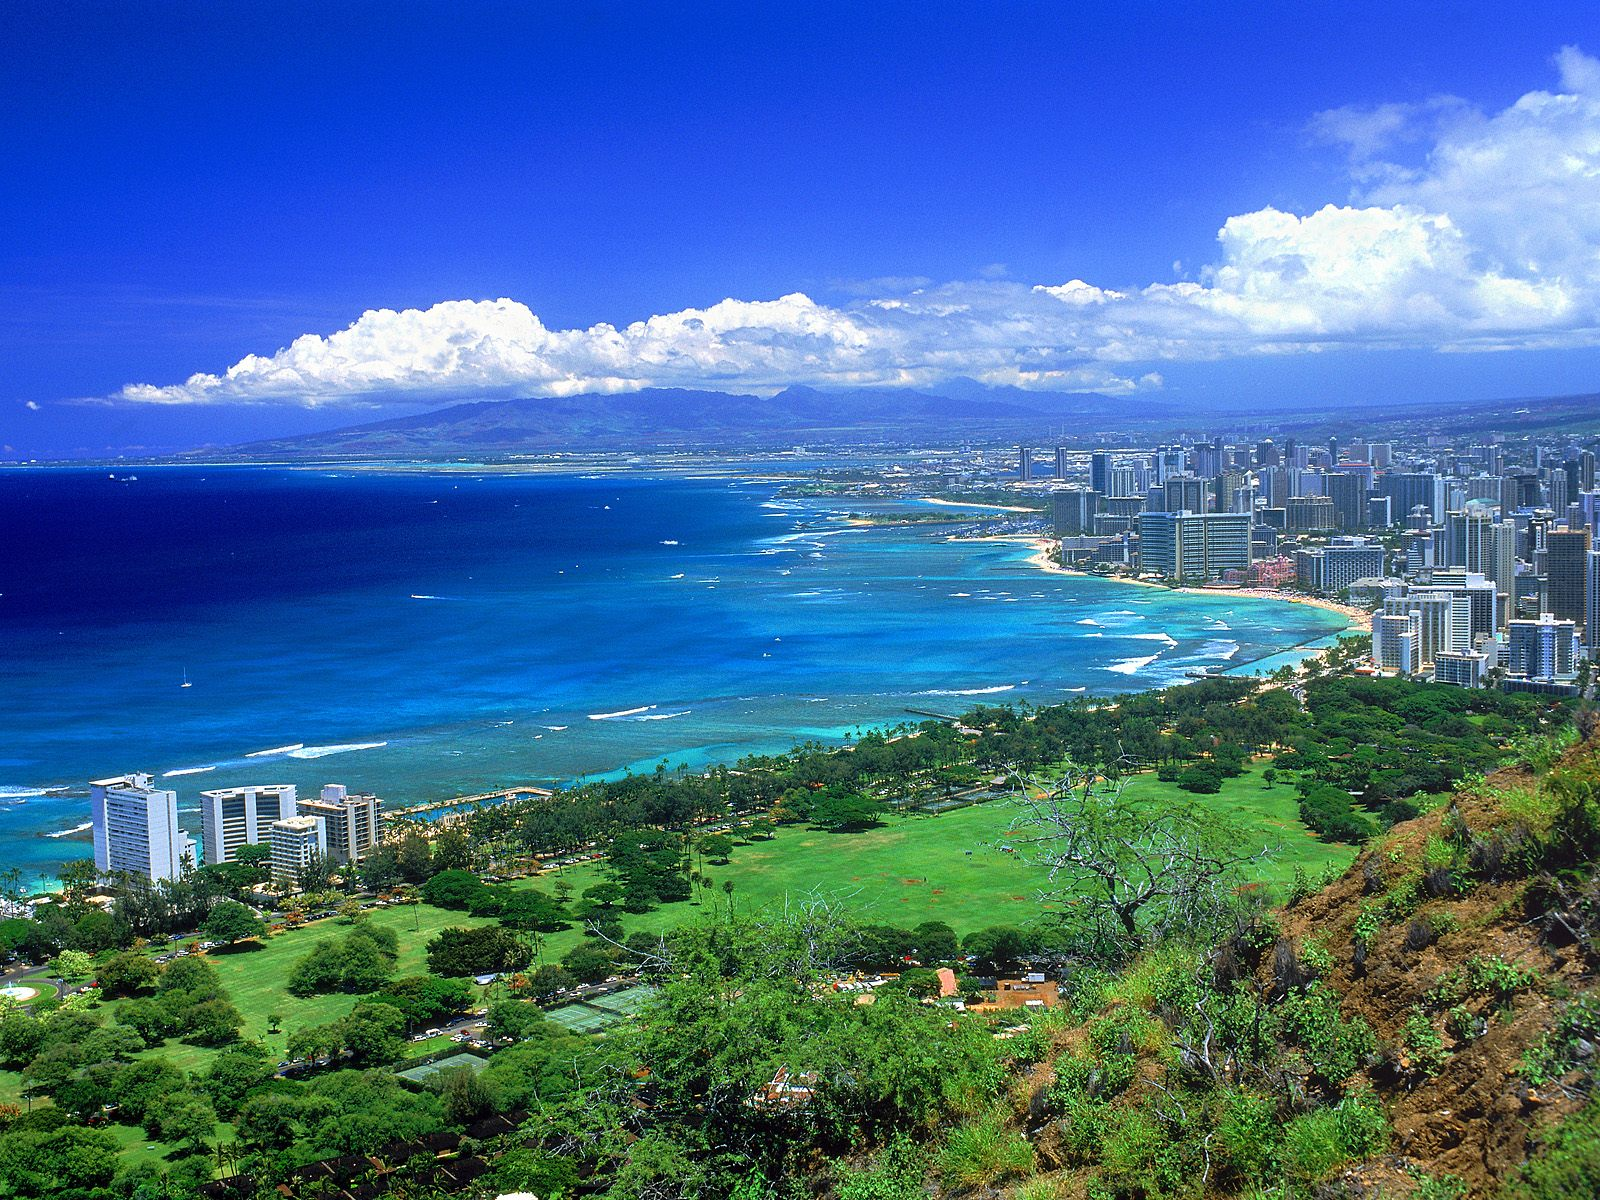 The Beauty of Nature in Hawaii